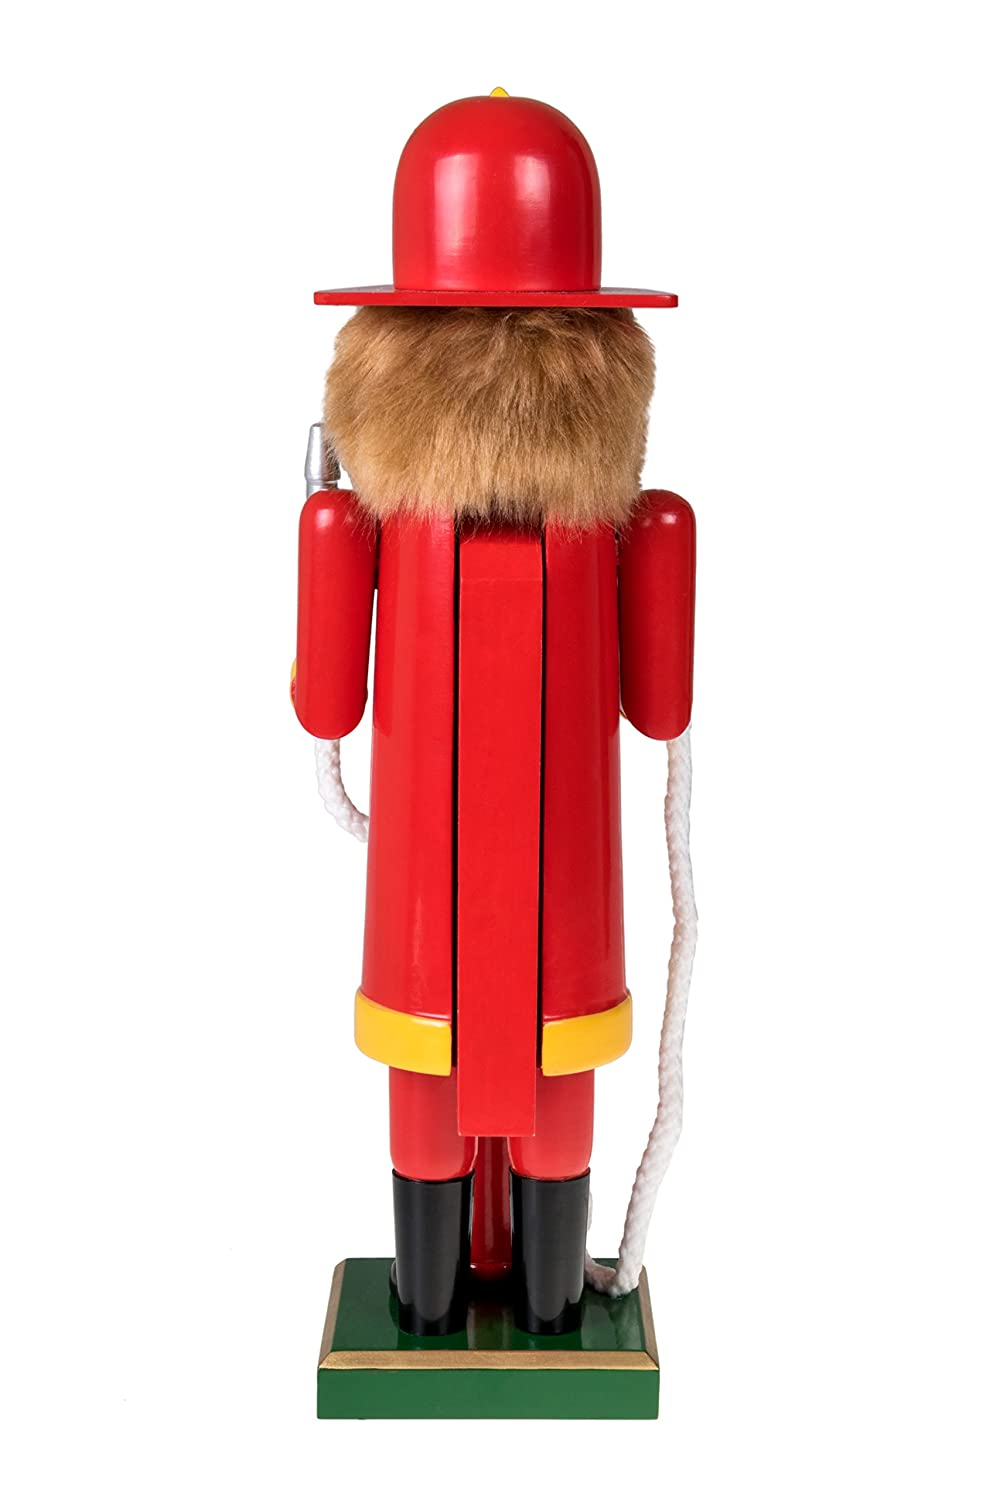 Perfect for Shelves Stands at 14 Tall with Dog Festive Christmas Nutcracker Dressed in Red Firefighter Uniform and Black Helmet Clever Creations Traditional Firefighter Wooden Nutcracker